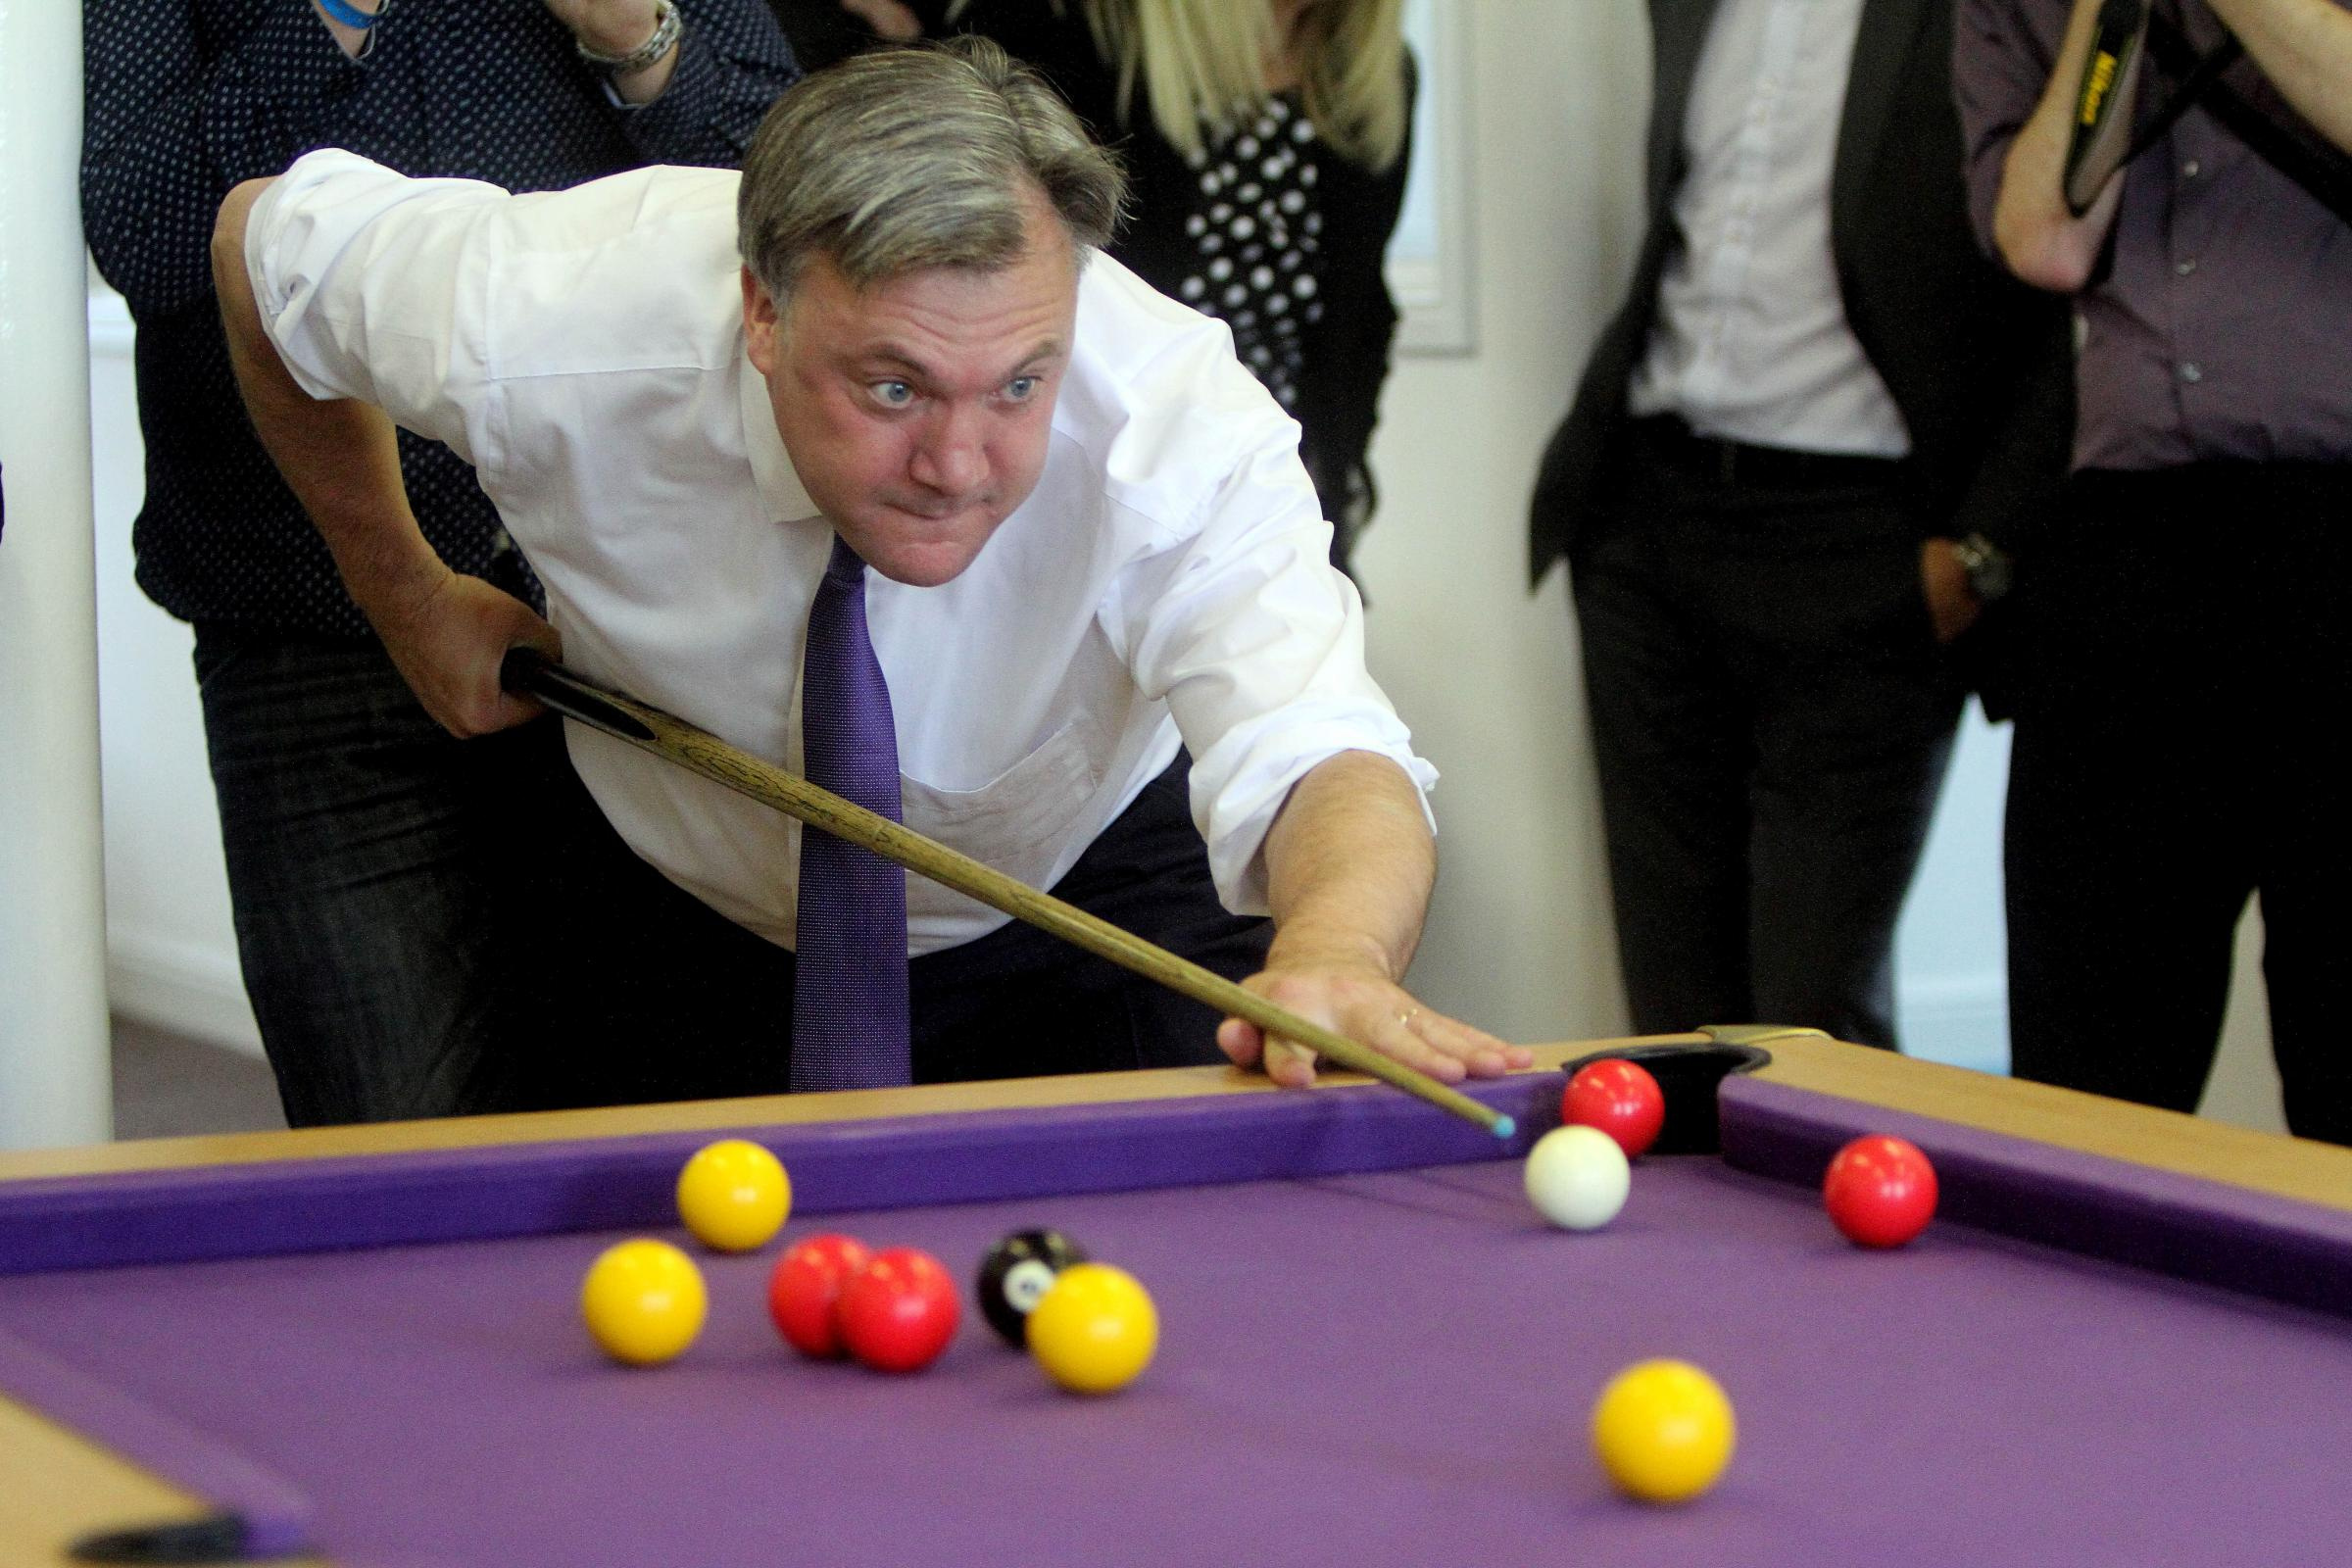 Ed Balls plays pool during his Keighley visit